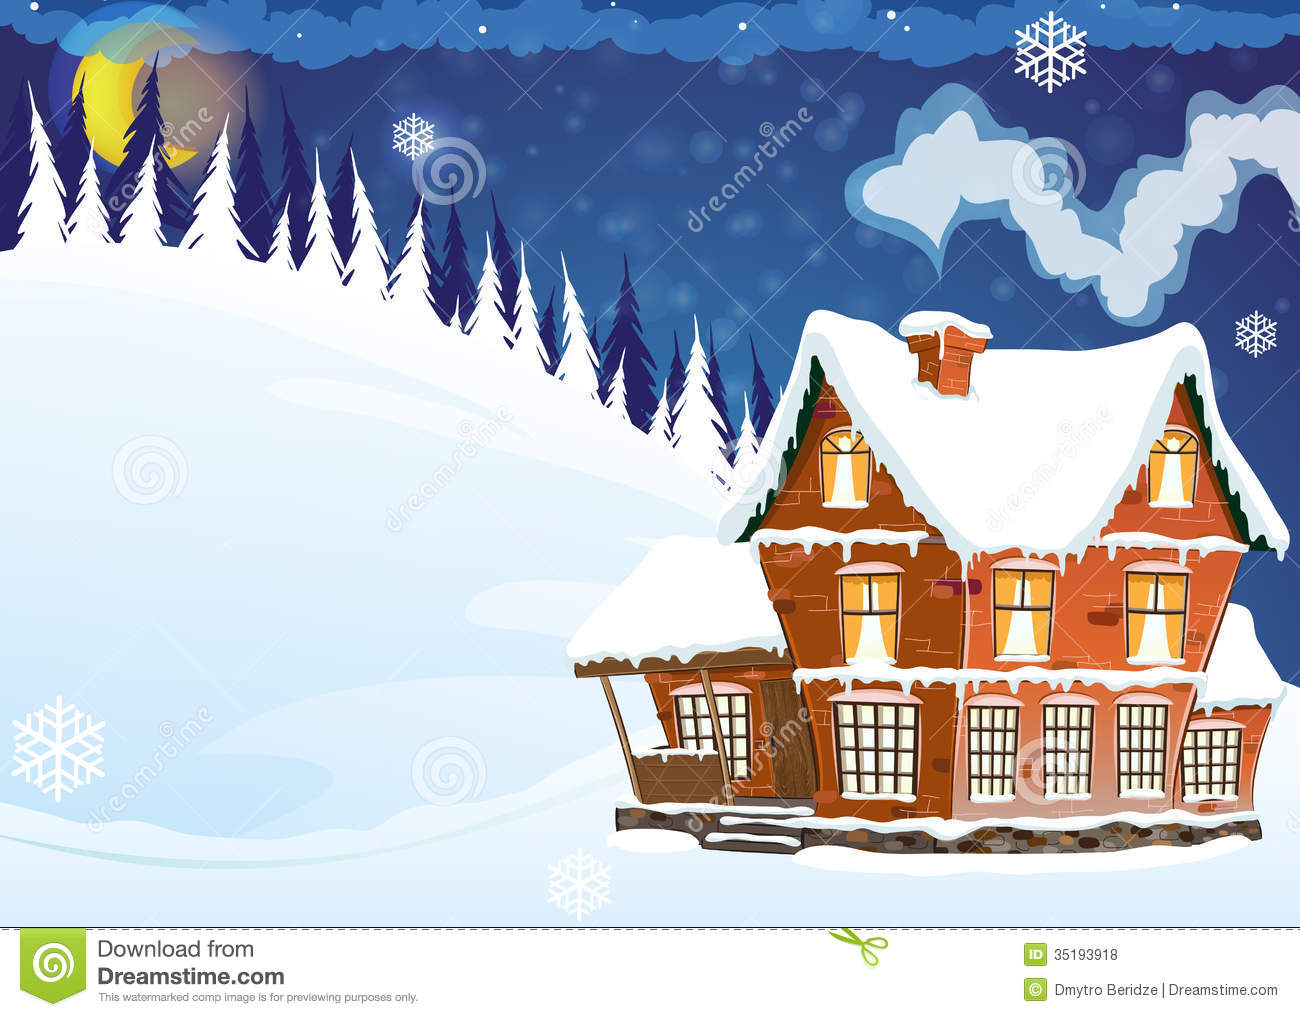 house winter clipart - photo #33